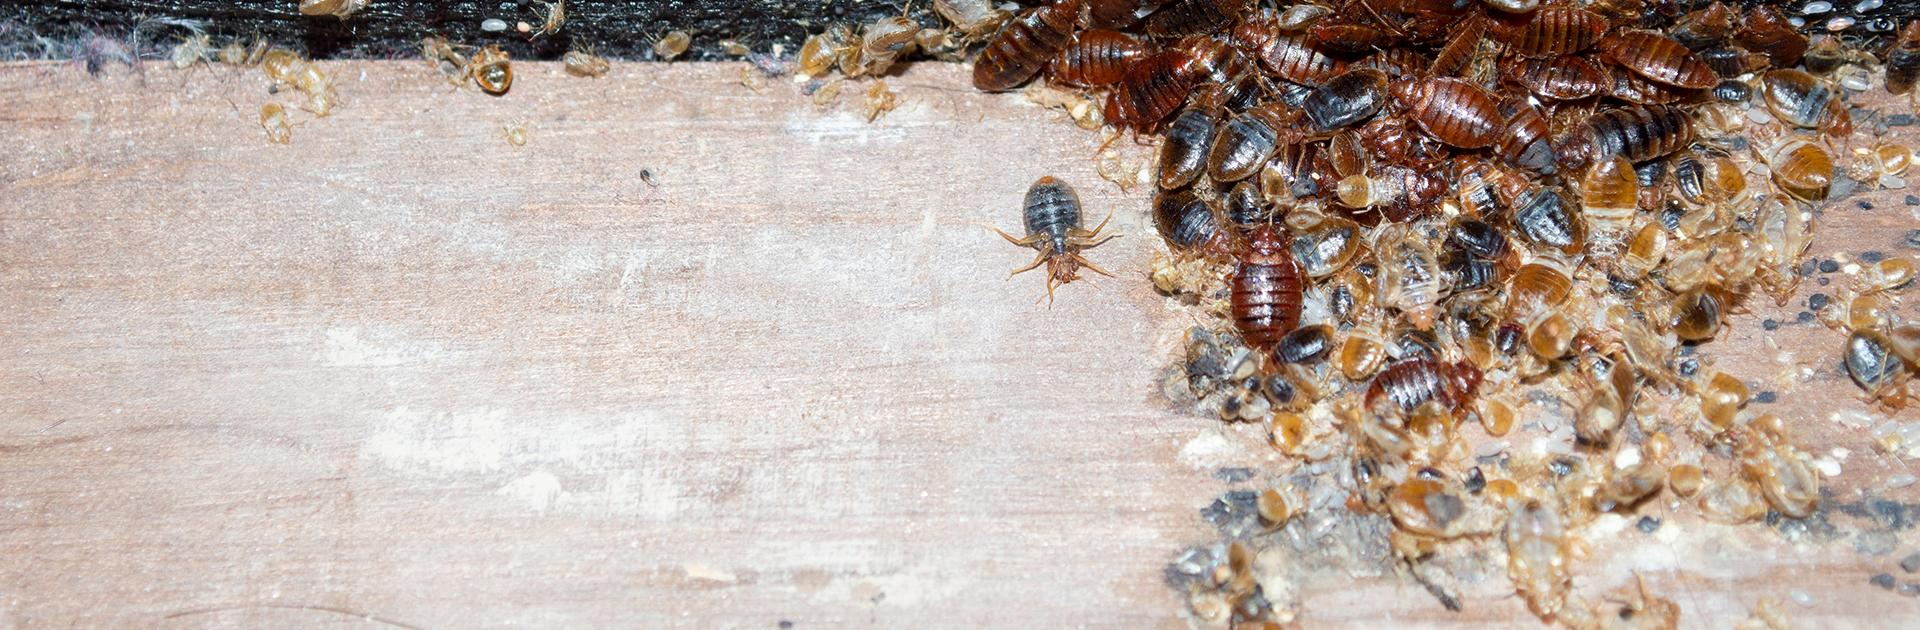 bed bugs infesting bed frame